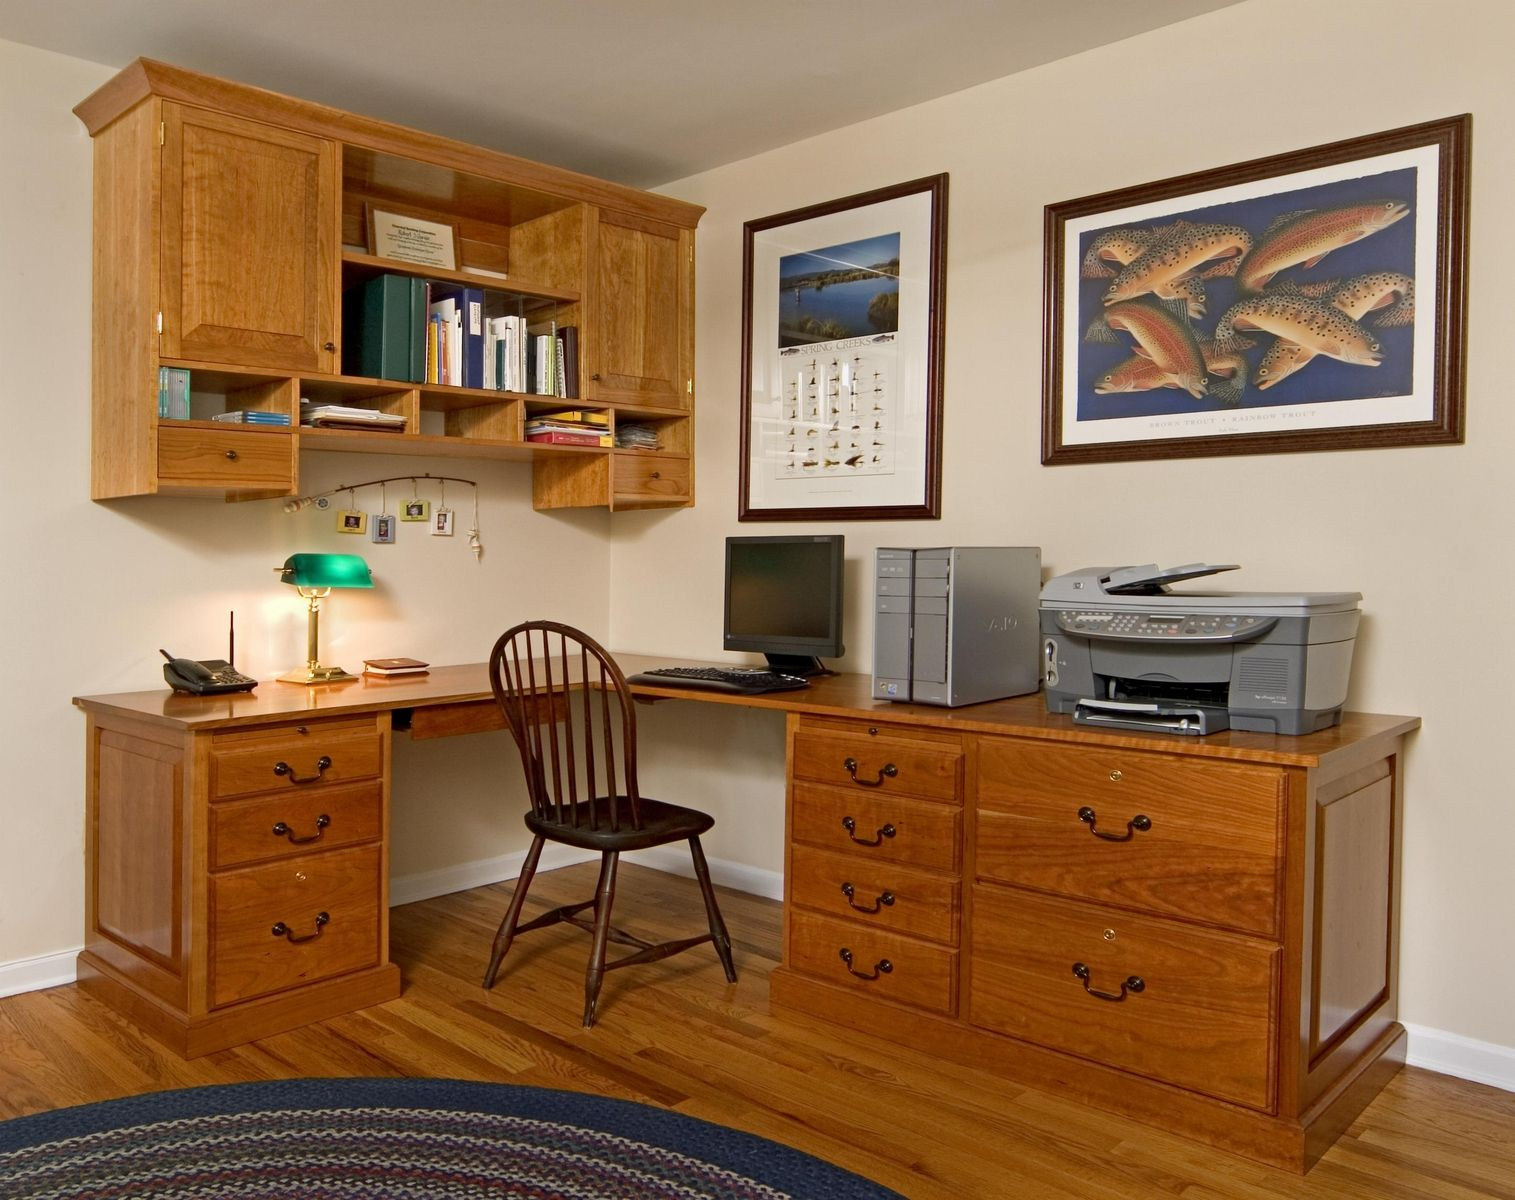 Handmade Custom Home Office Desk And Cabinet by John Landis ...